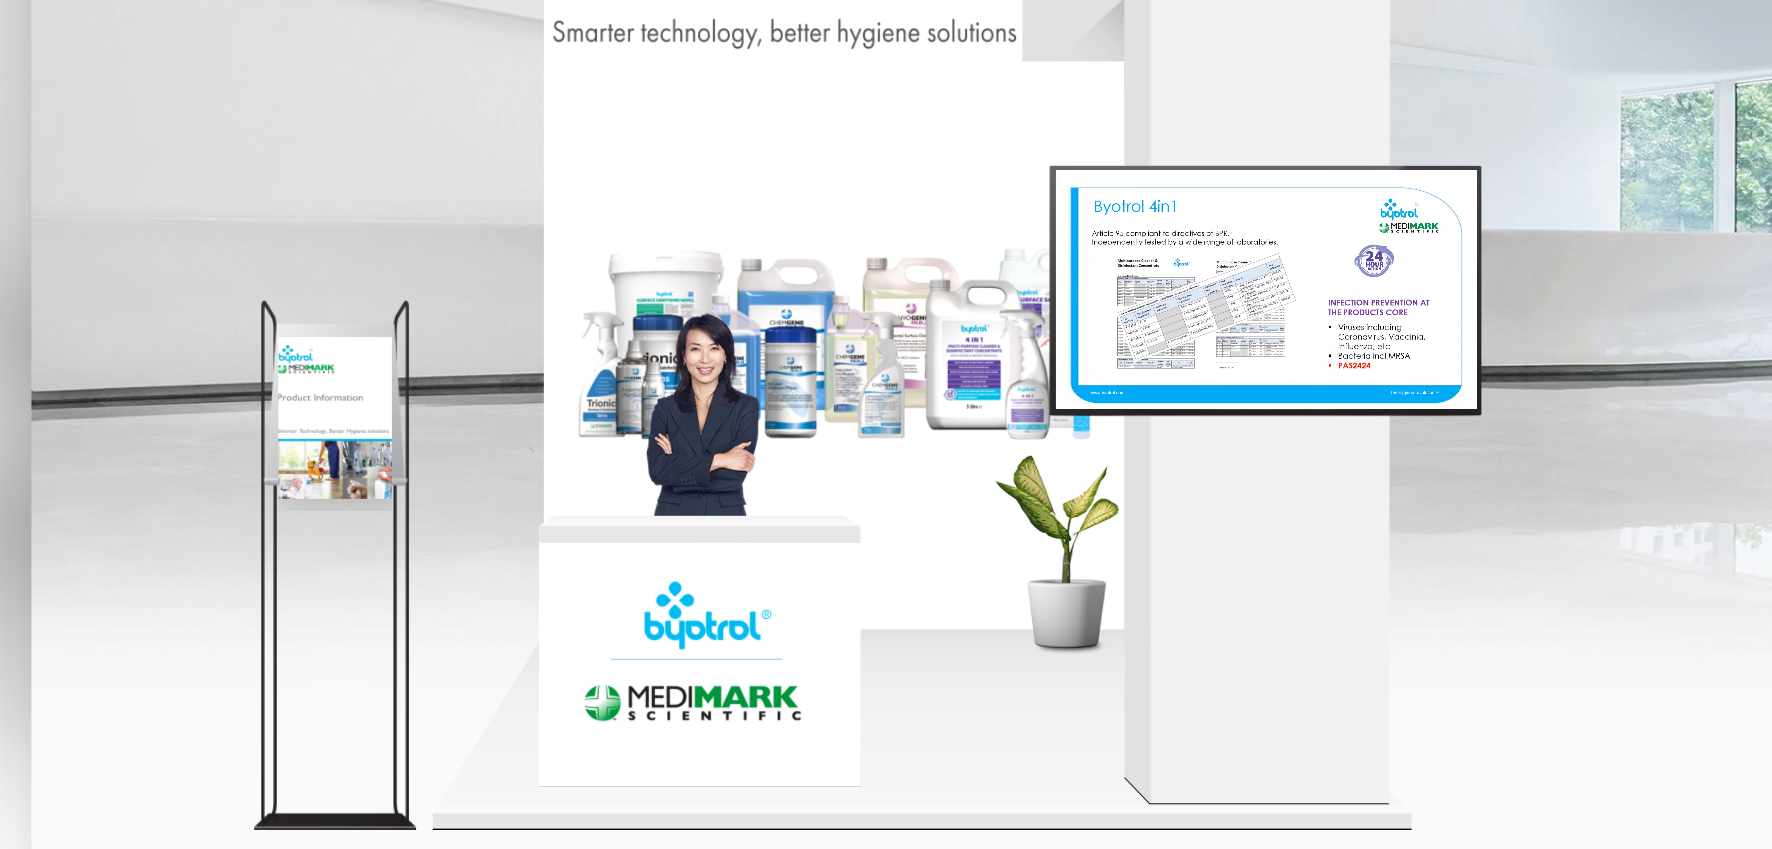 MEDIMARK SCIENTIFIC AT MANCHESTER CLEANING SHOW VIRTUAL EVENT